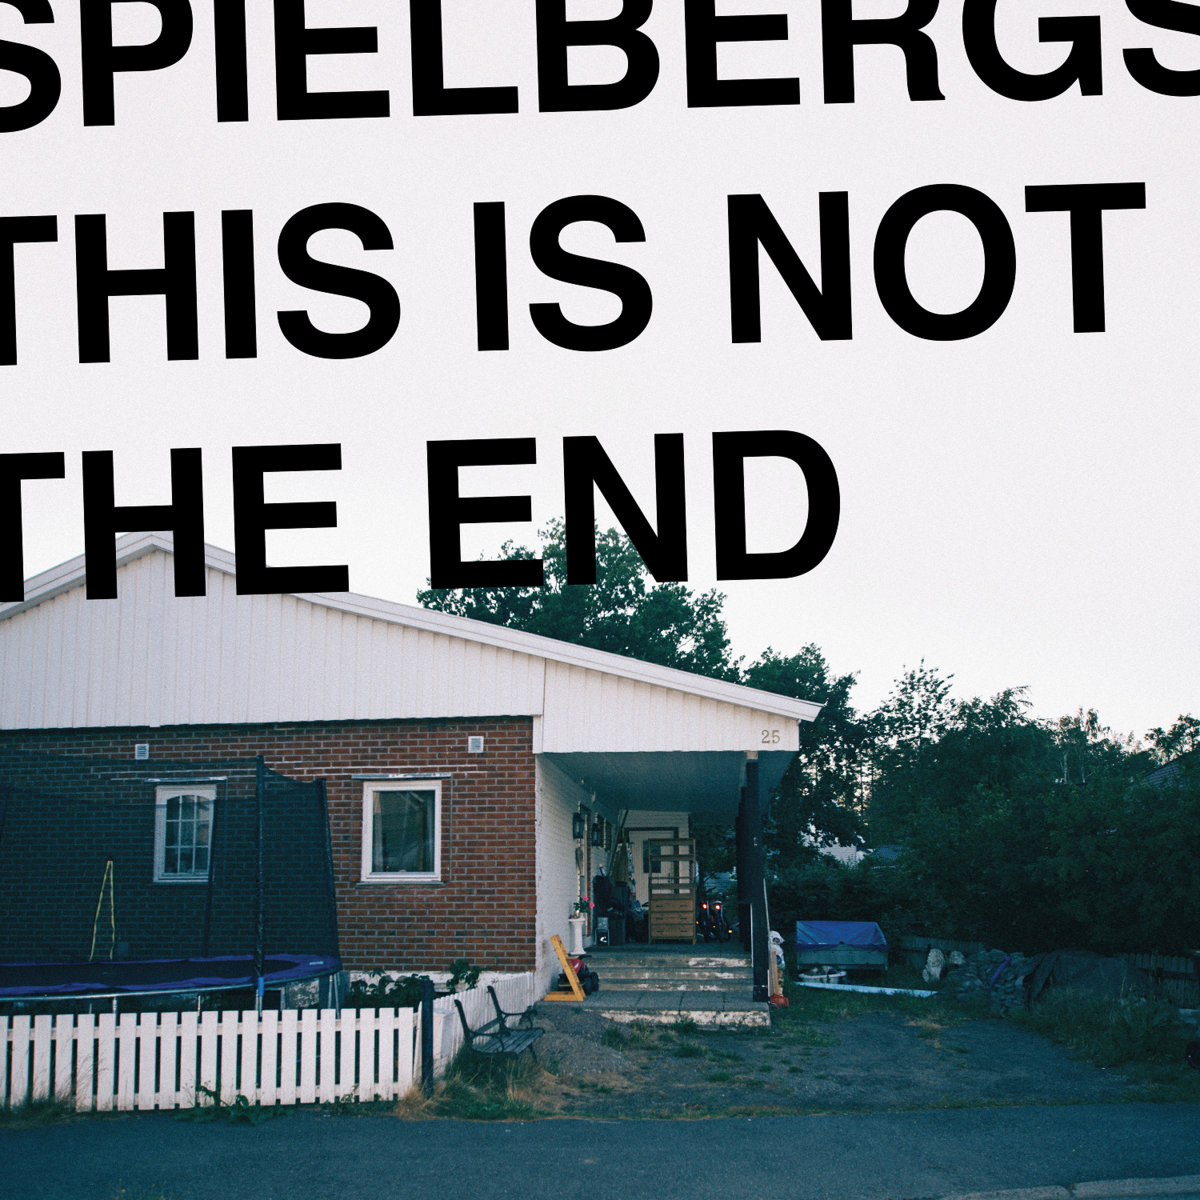 Review: This is Not the End by Spielbergs